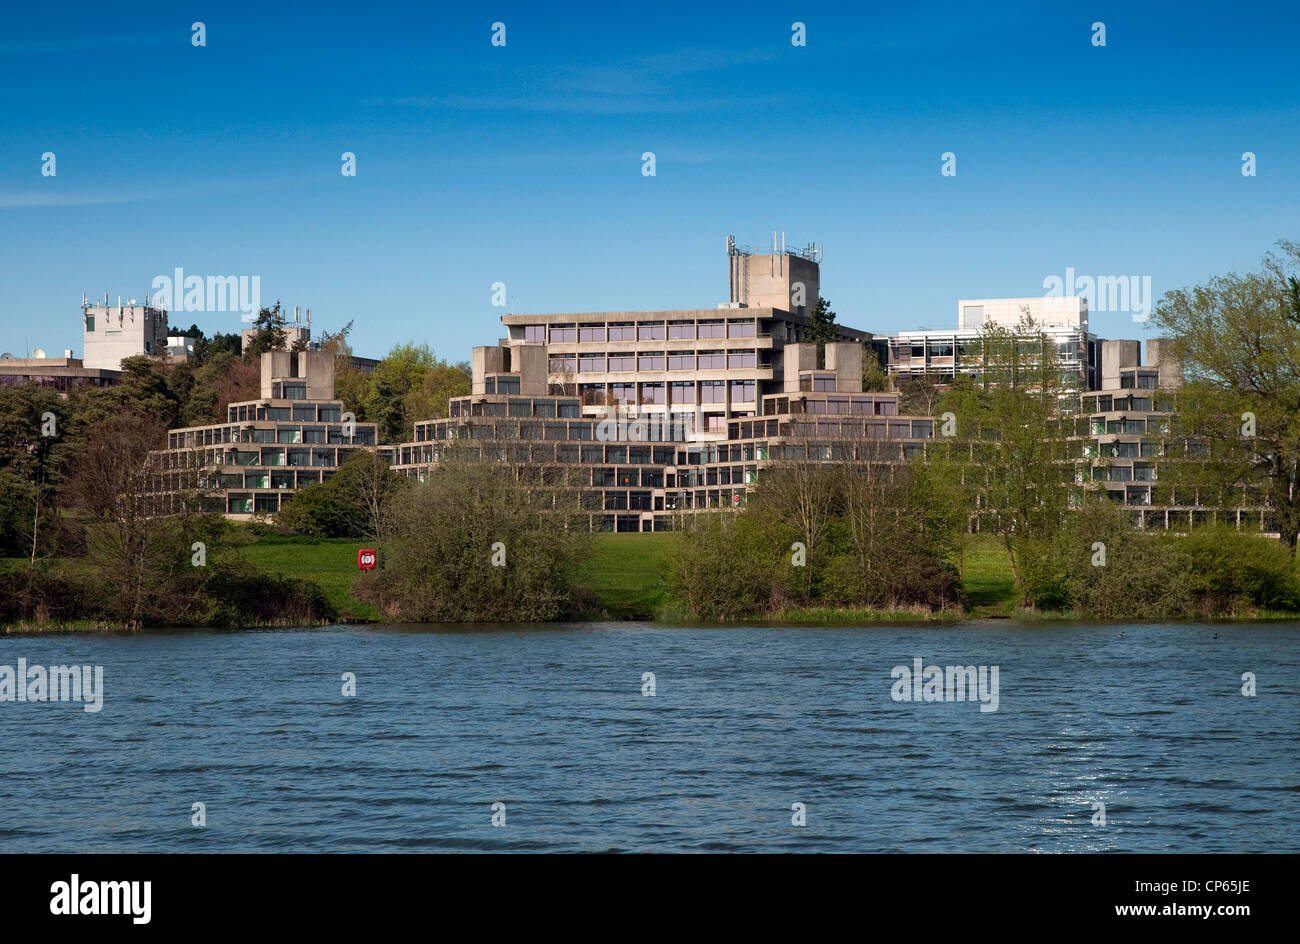 university of east anglia, uea, norwich, norfolk, england - Stock Image